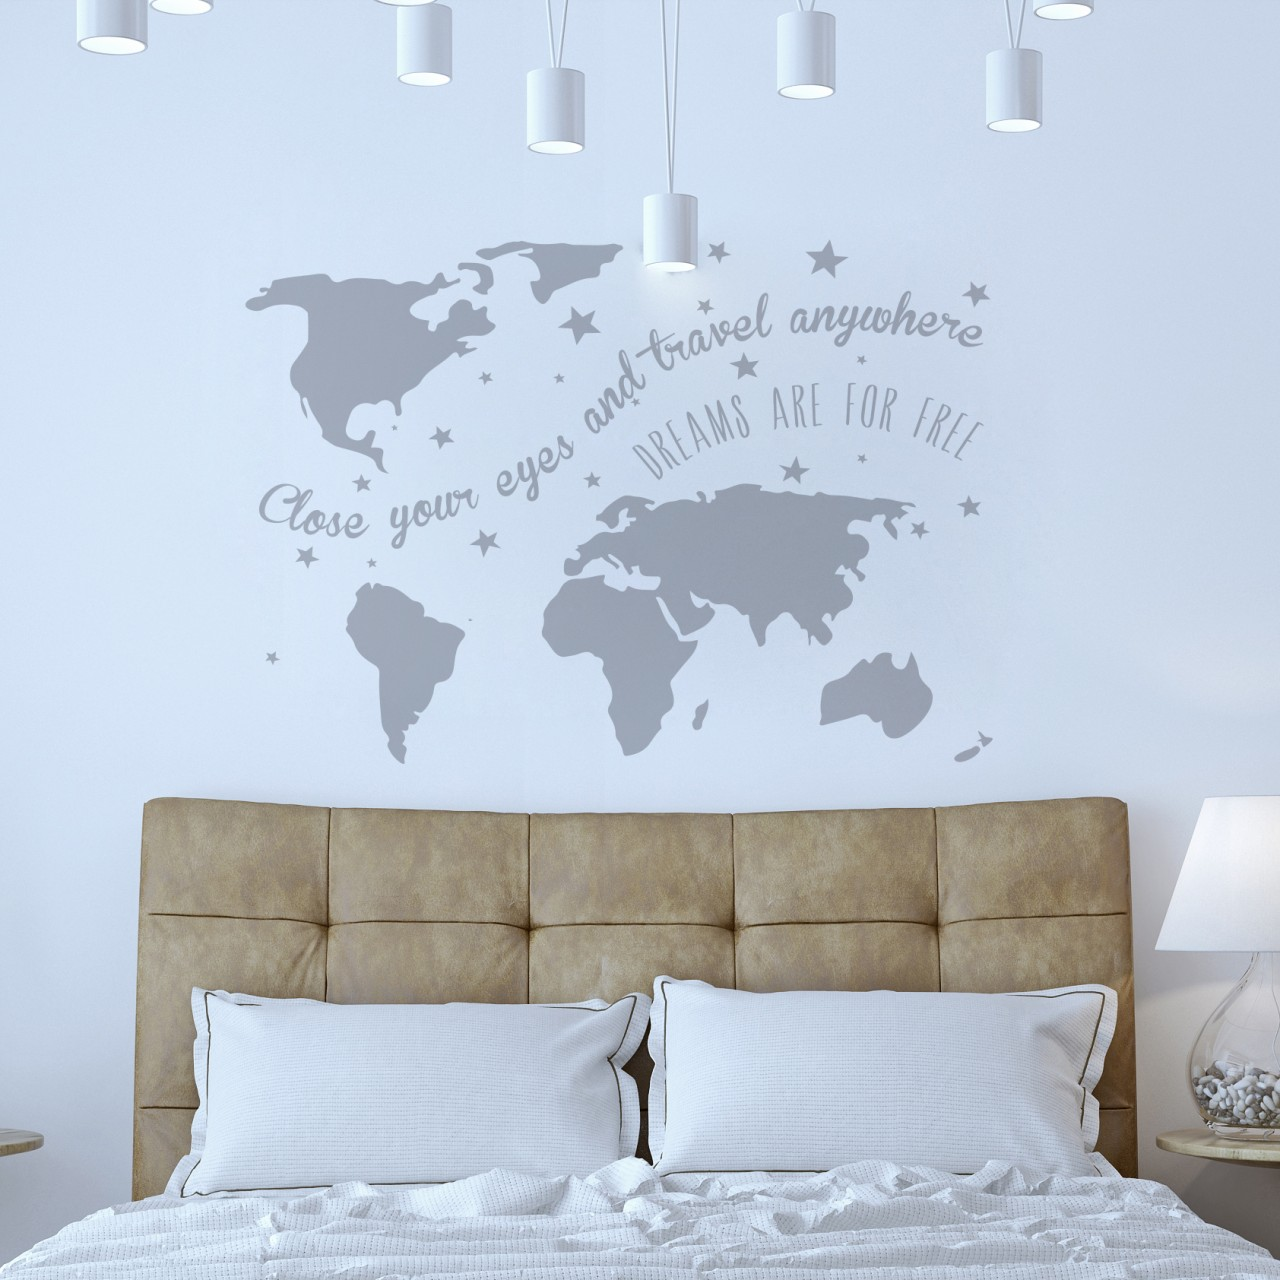 Wall sticker world map dreams shopworldmapswall sticker world map dreams muursticker wereldkaart dreams gumiabroncs Image collections